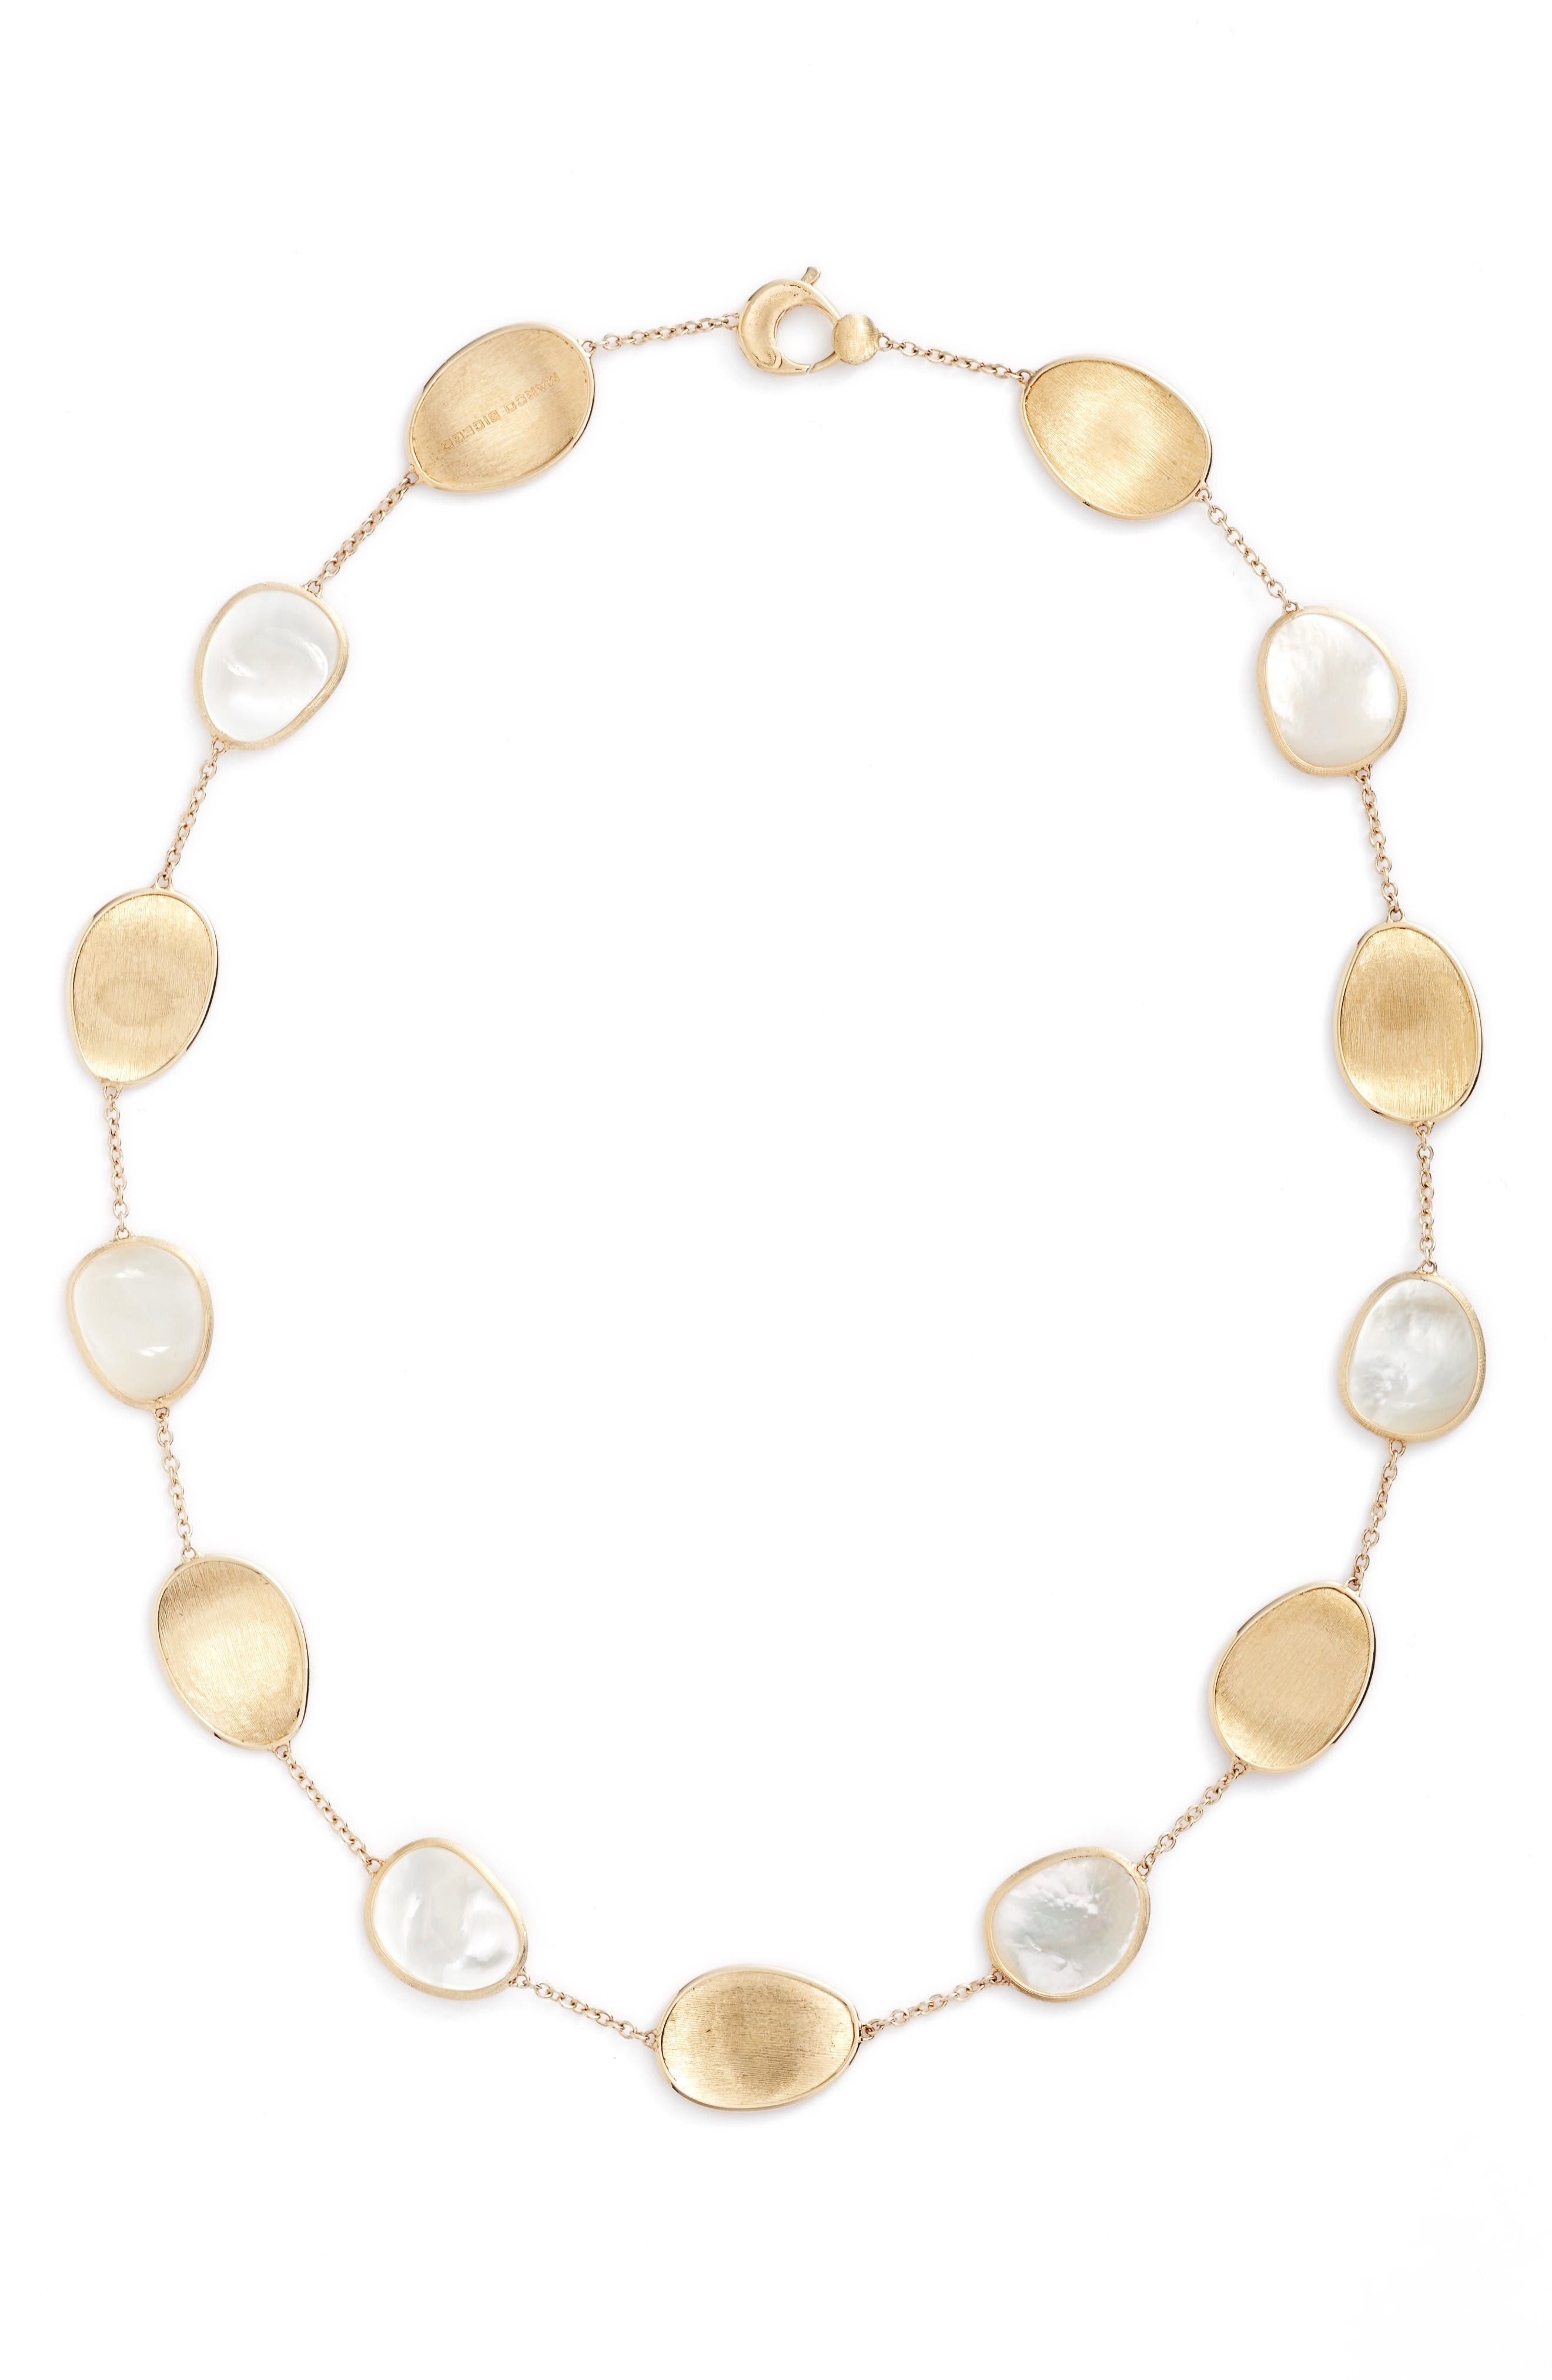 Lunaria Mother of Pearl Collar Necklace,                         Main,                         color, White Mother Of Pearl